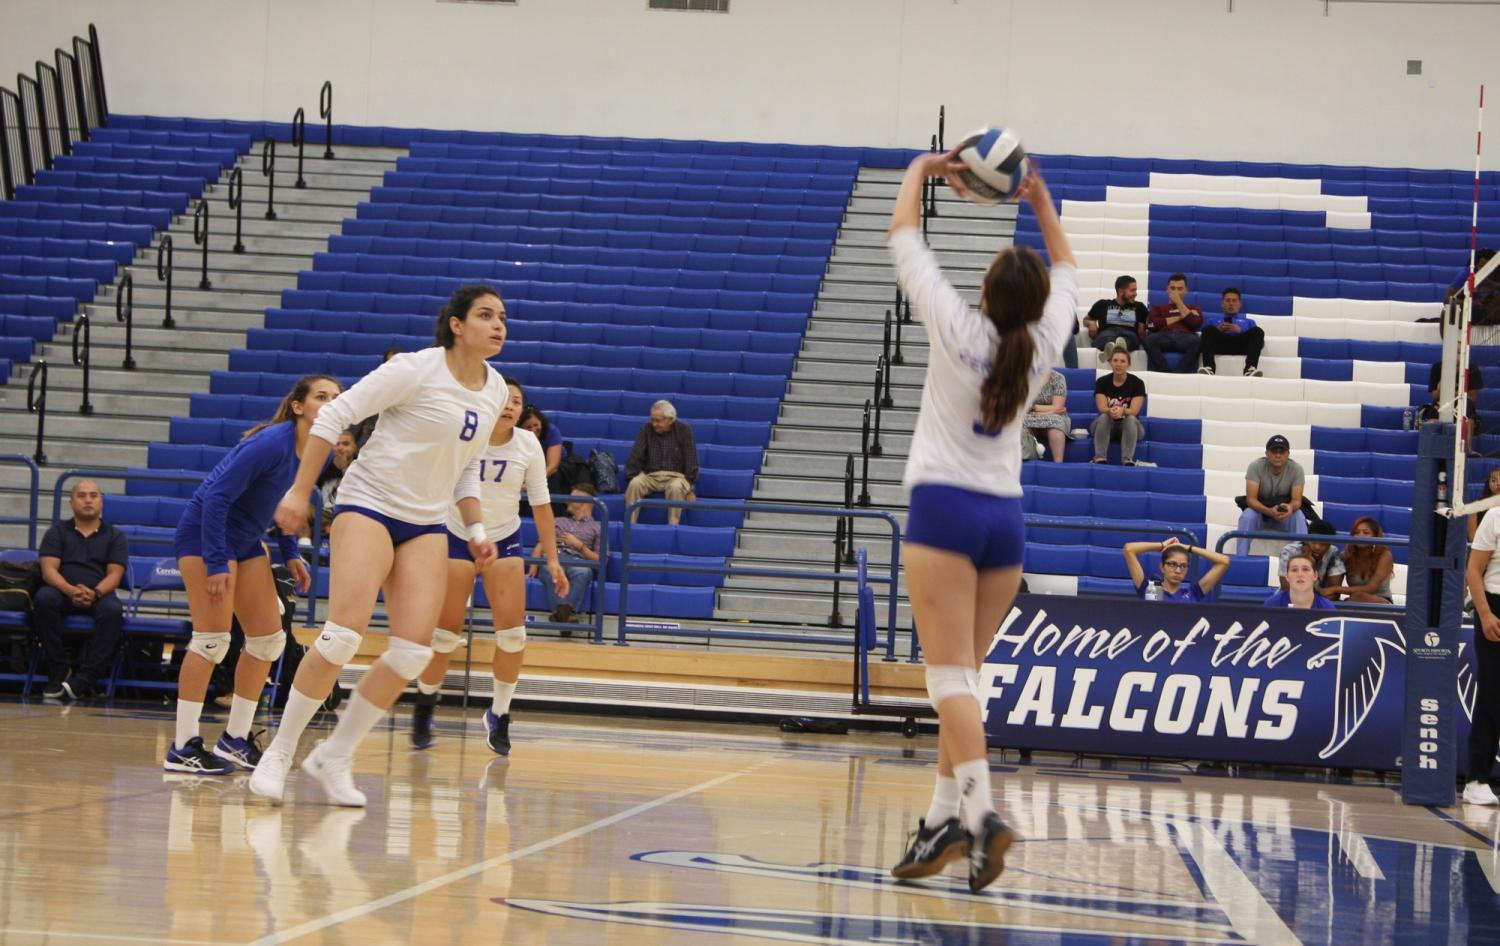 No. 5 Sabrina Rivas setting up for her team mate to spike the ball.  The Falcons lost 3-1 at home, make their season record 0-11. Photo credit: David Jenkins